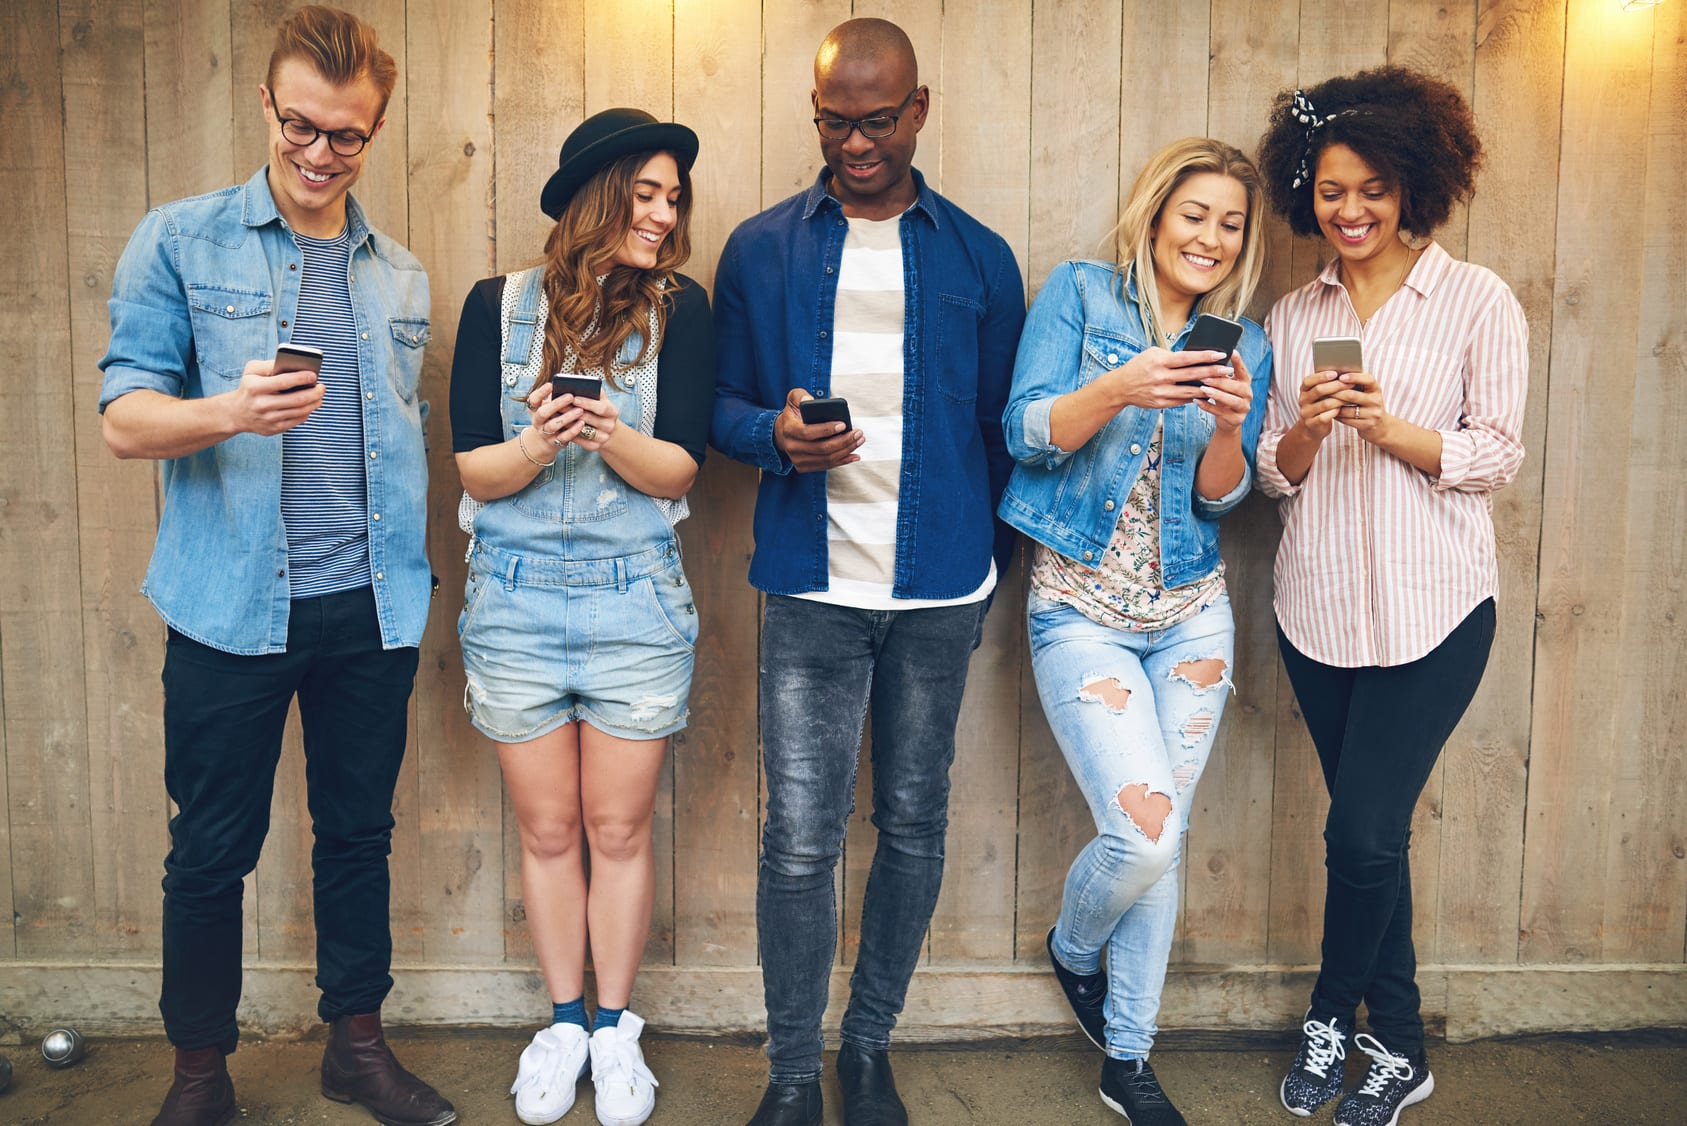 How to Reach Millennials through Your Social Media Strategy